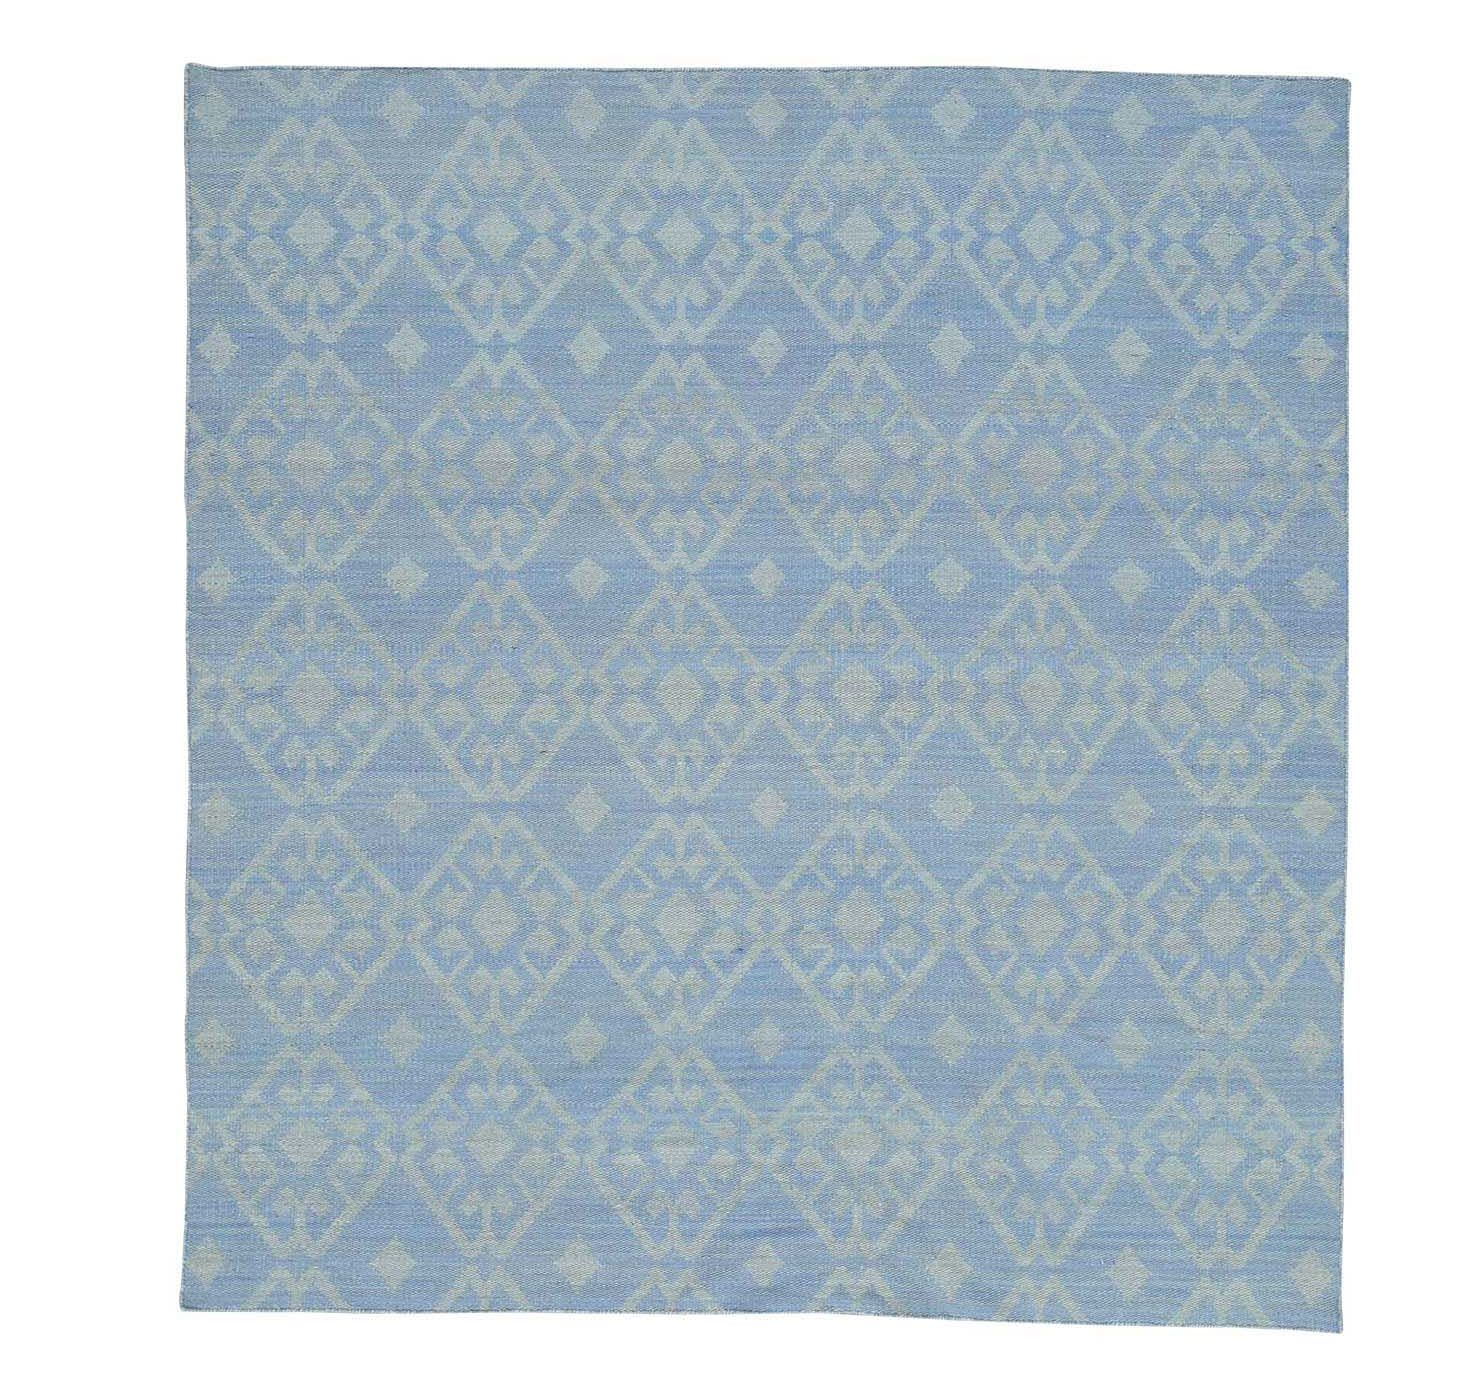 Flat Weave Reversible Durie Kilim Squarish Hand-Knotted Sky Blue Area Rug